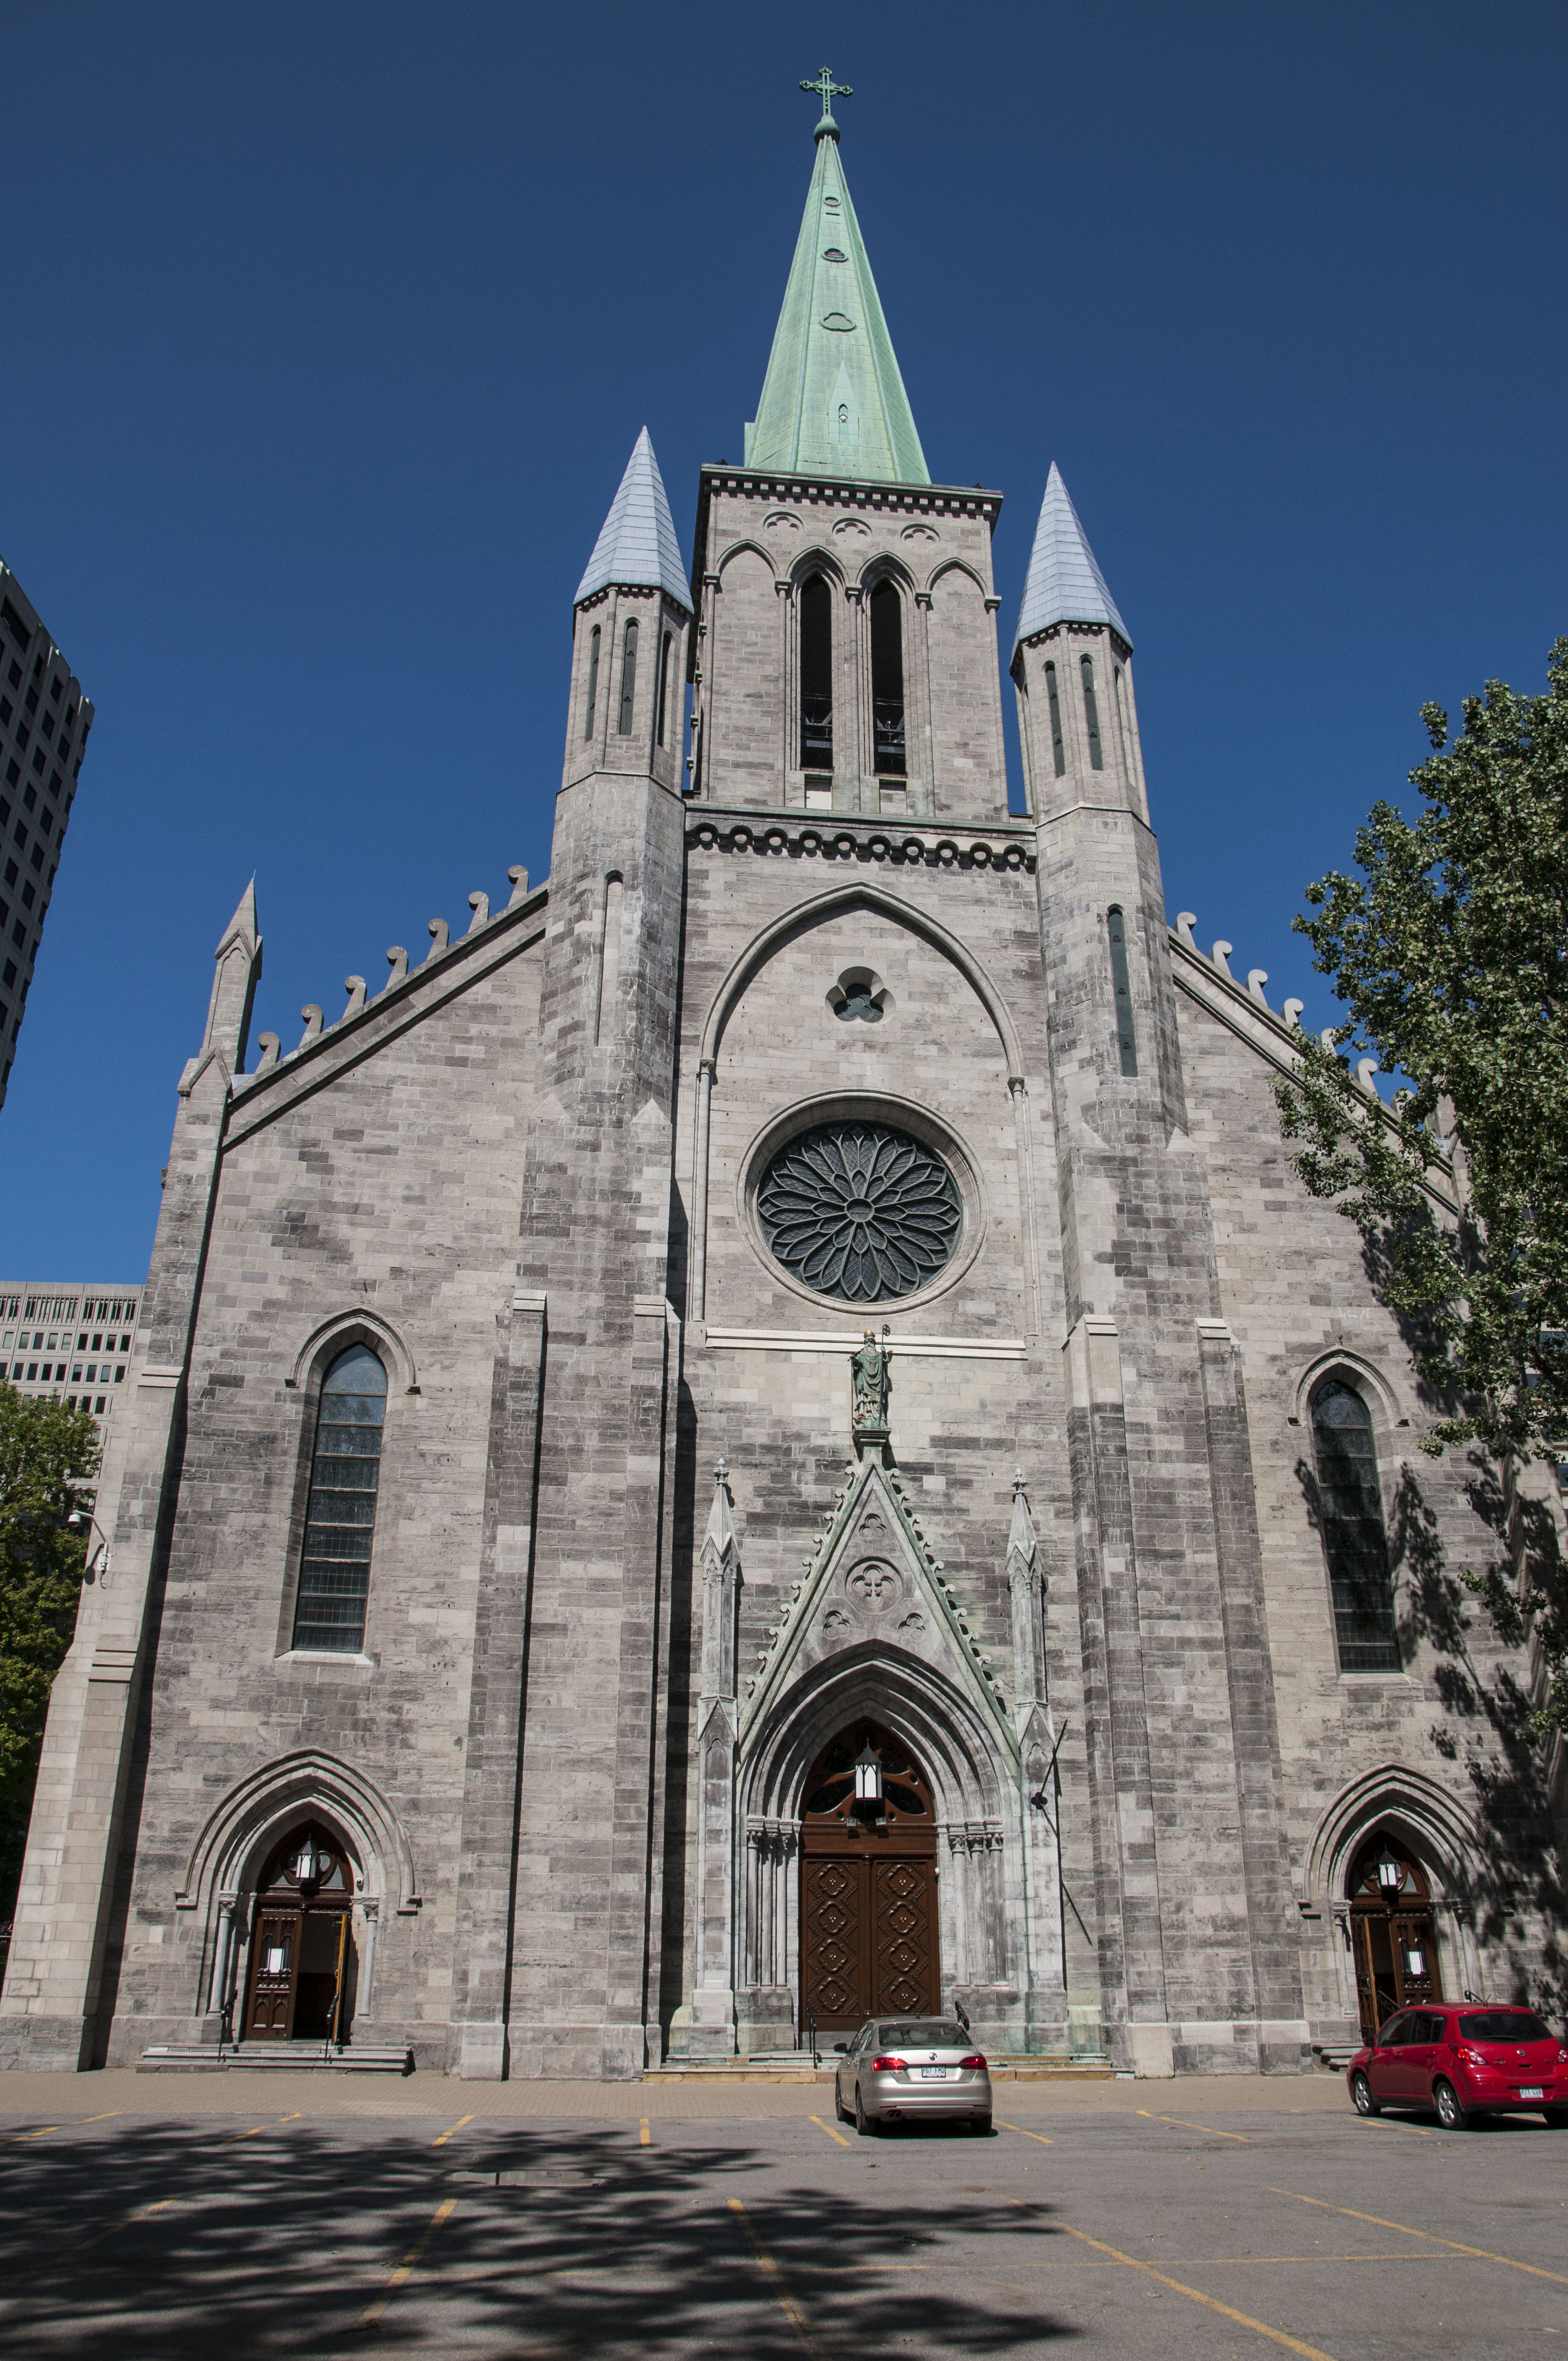 Gothic Revival Architecture that will take you back to 19th century